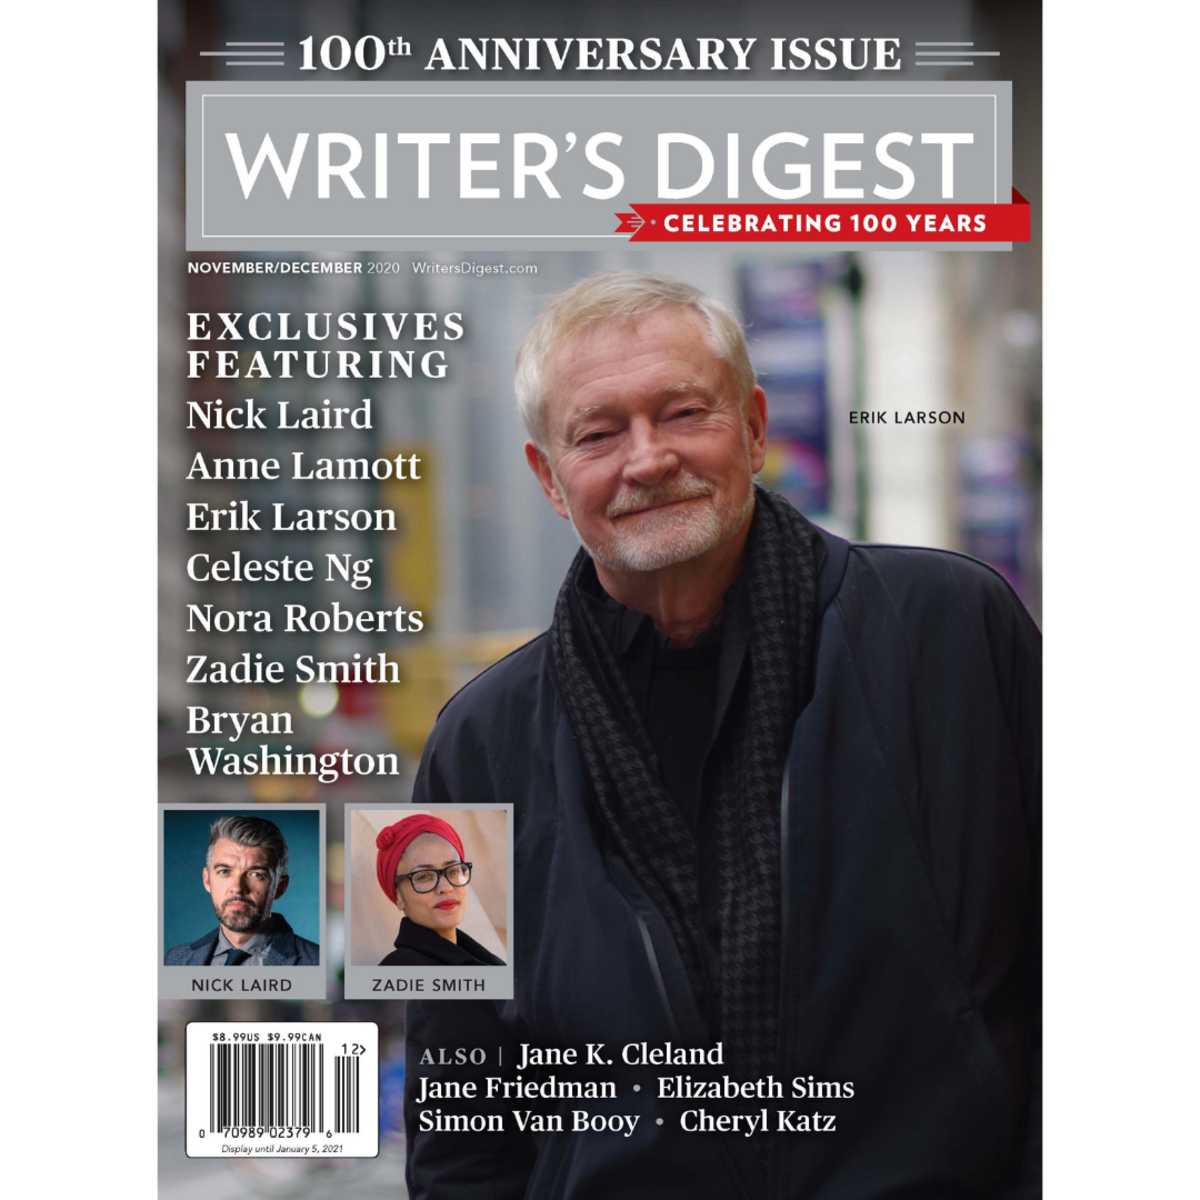 WD 100th Anniversary cover featuring Erik Larson, author of The Splendid and the Vile.